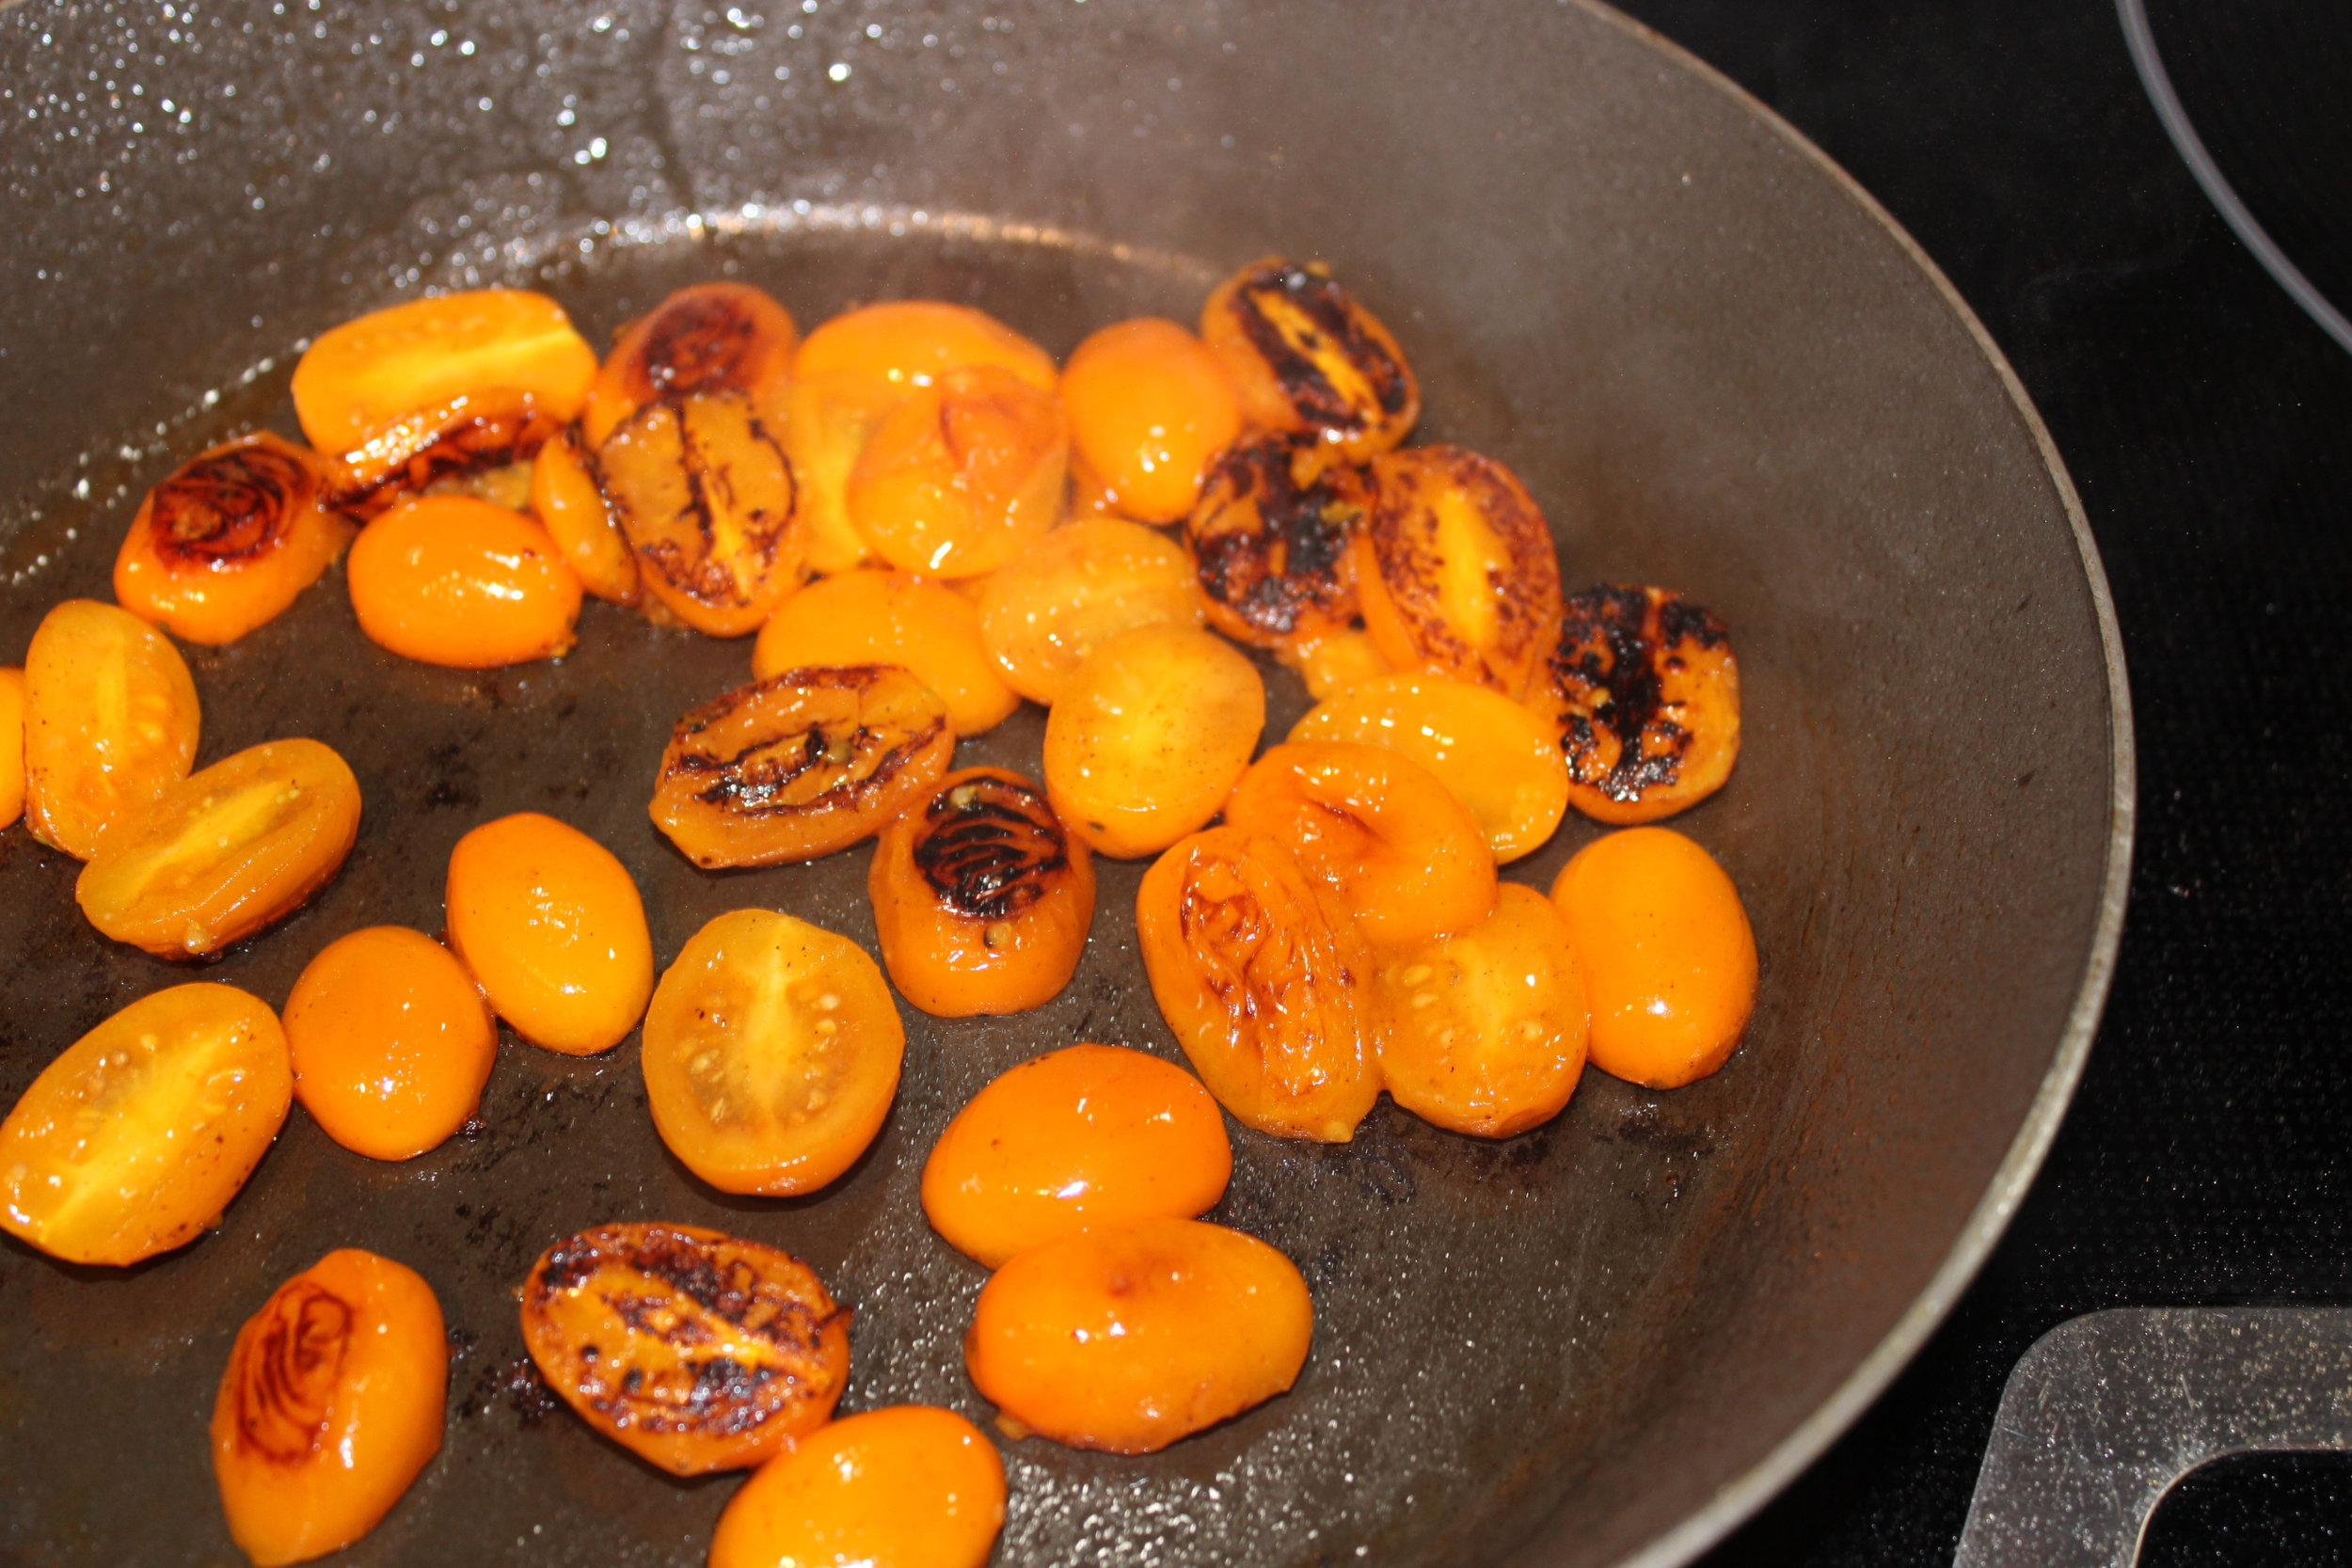 Blistered tomatoes give a MELLOWED acidity to the dish